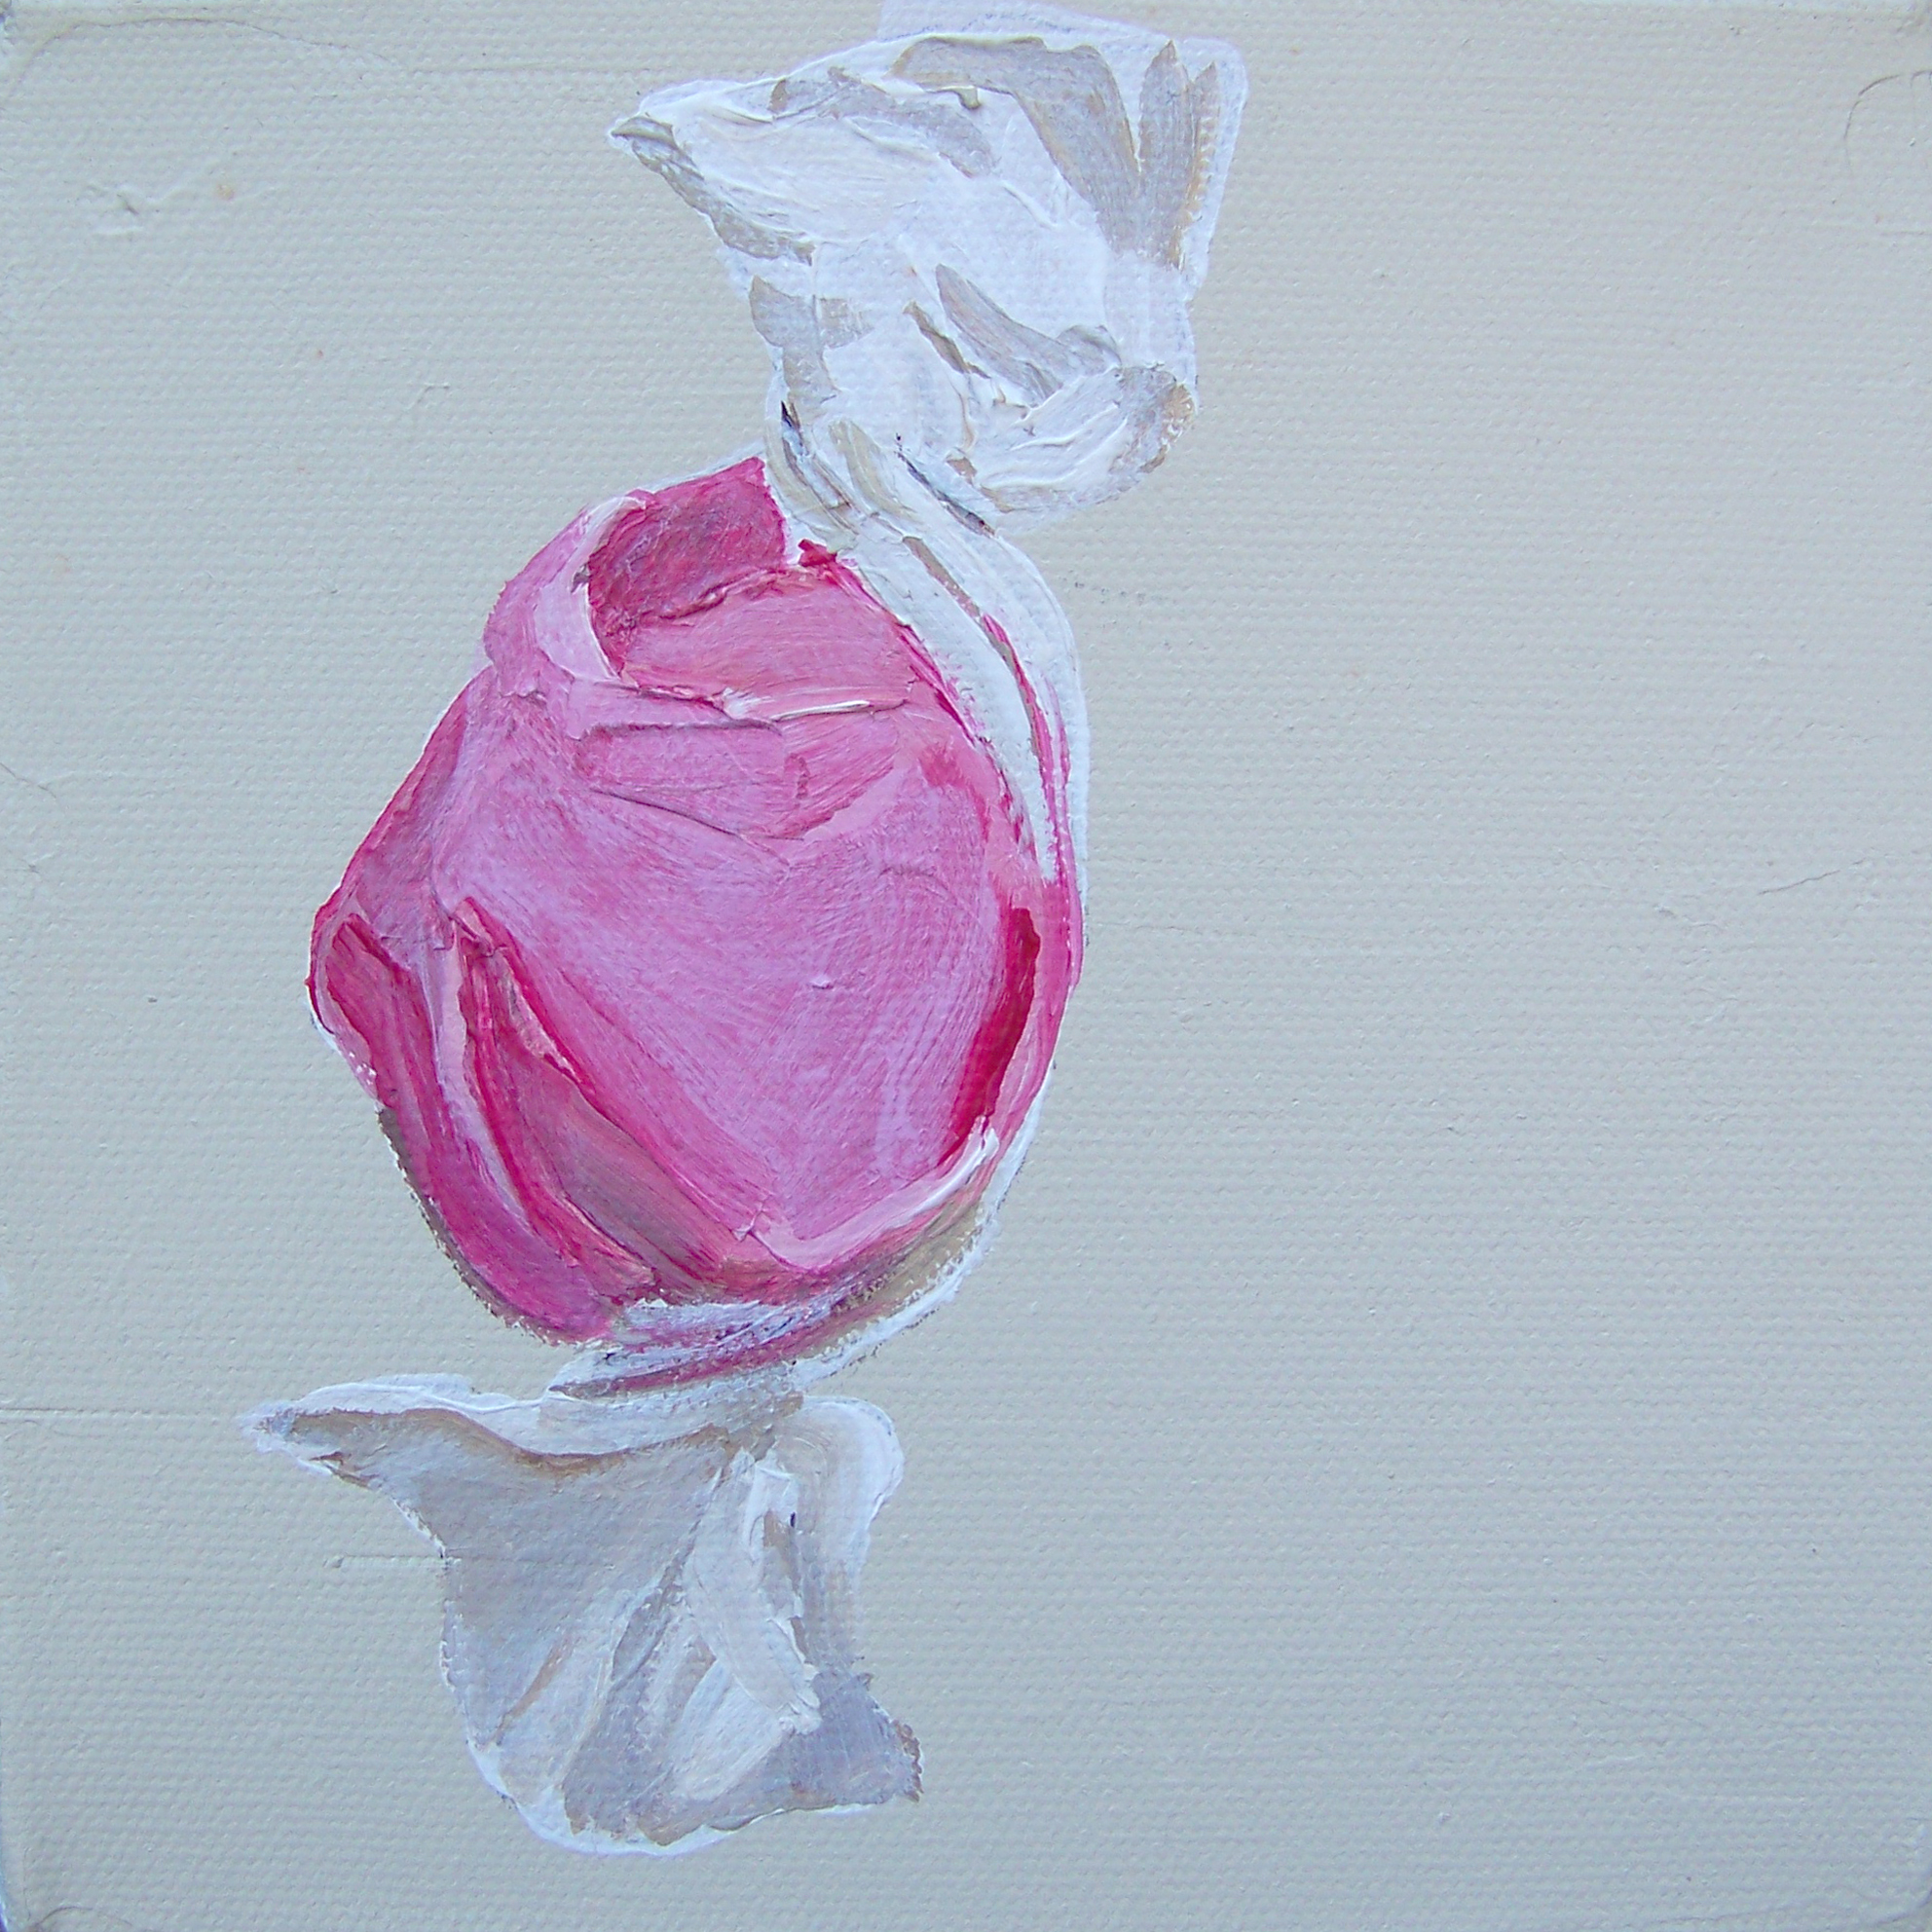 SOLD-6x6-Pink Taffy